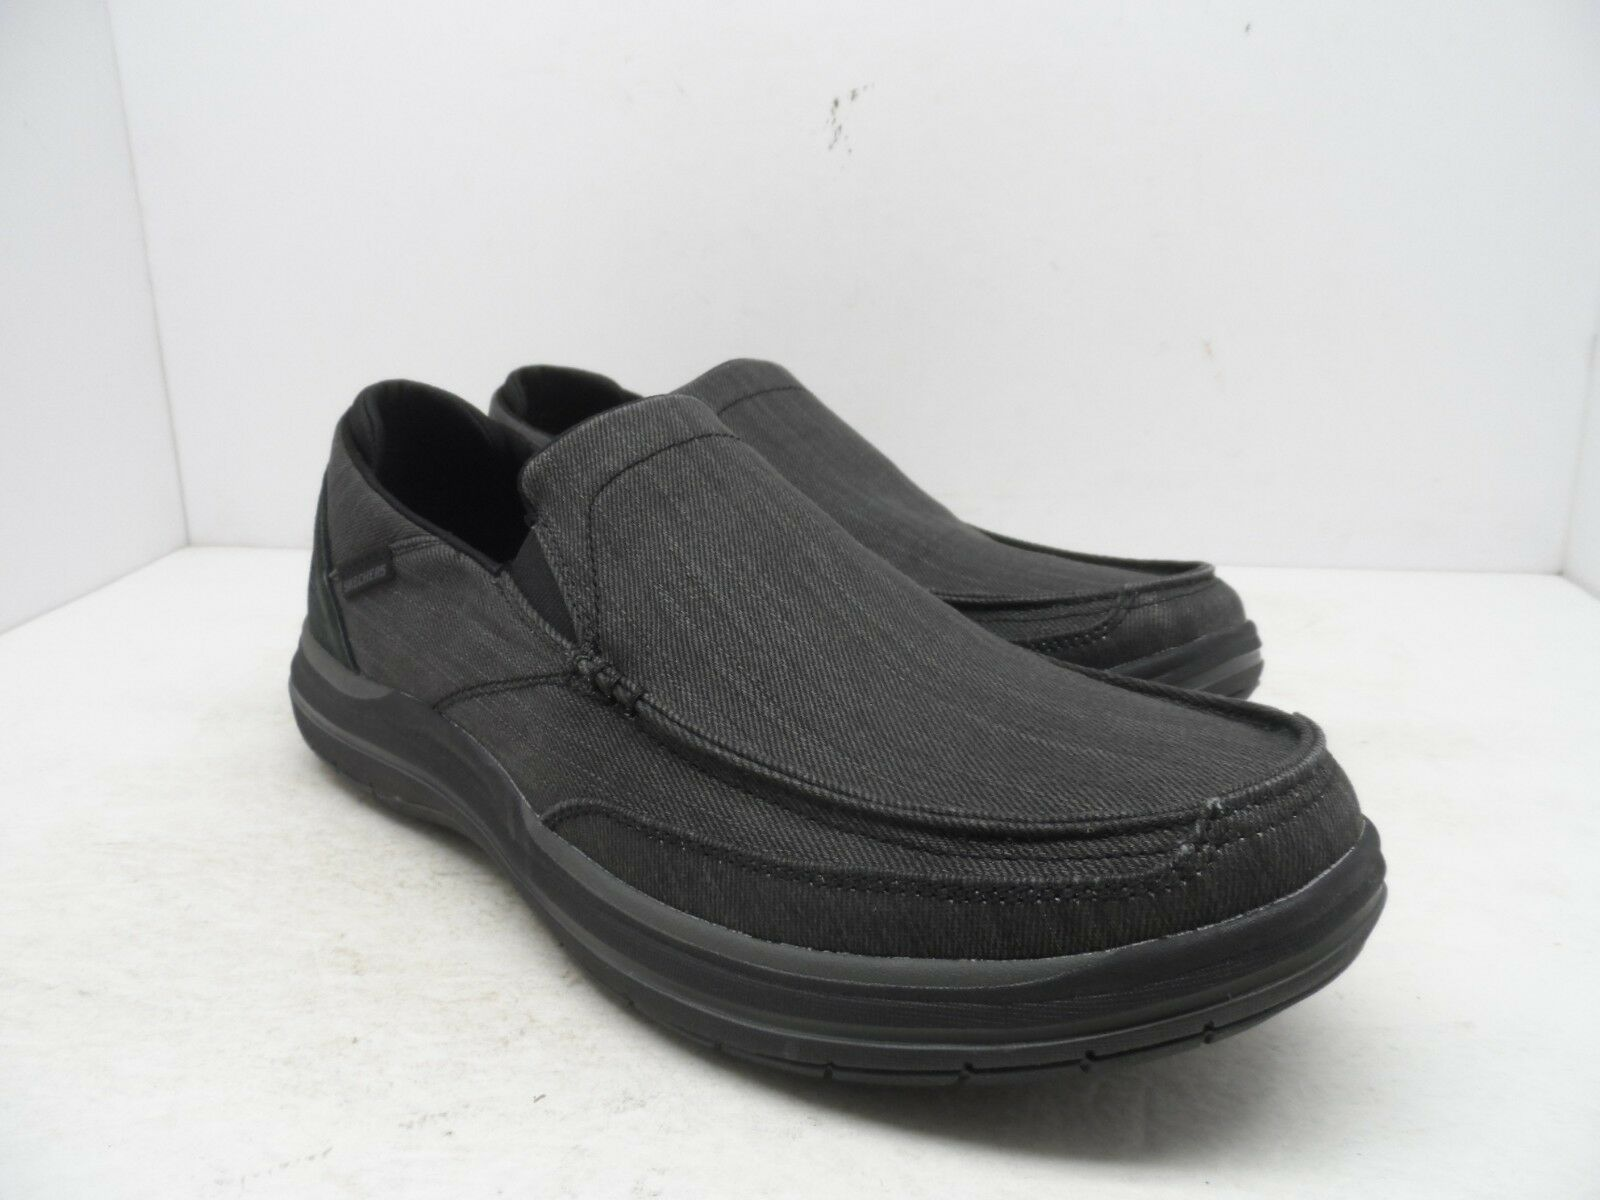 Skechers Men's Classic Fit Elson-AMster Slip On Casual shoes Black Size 12M